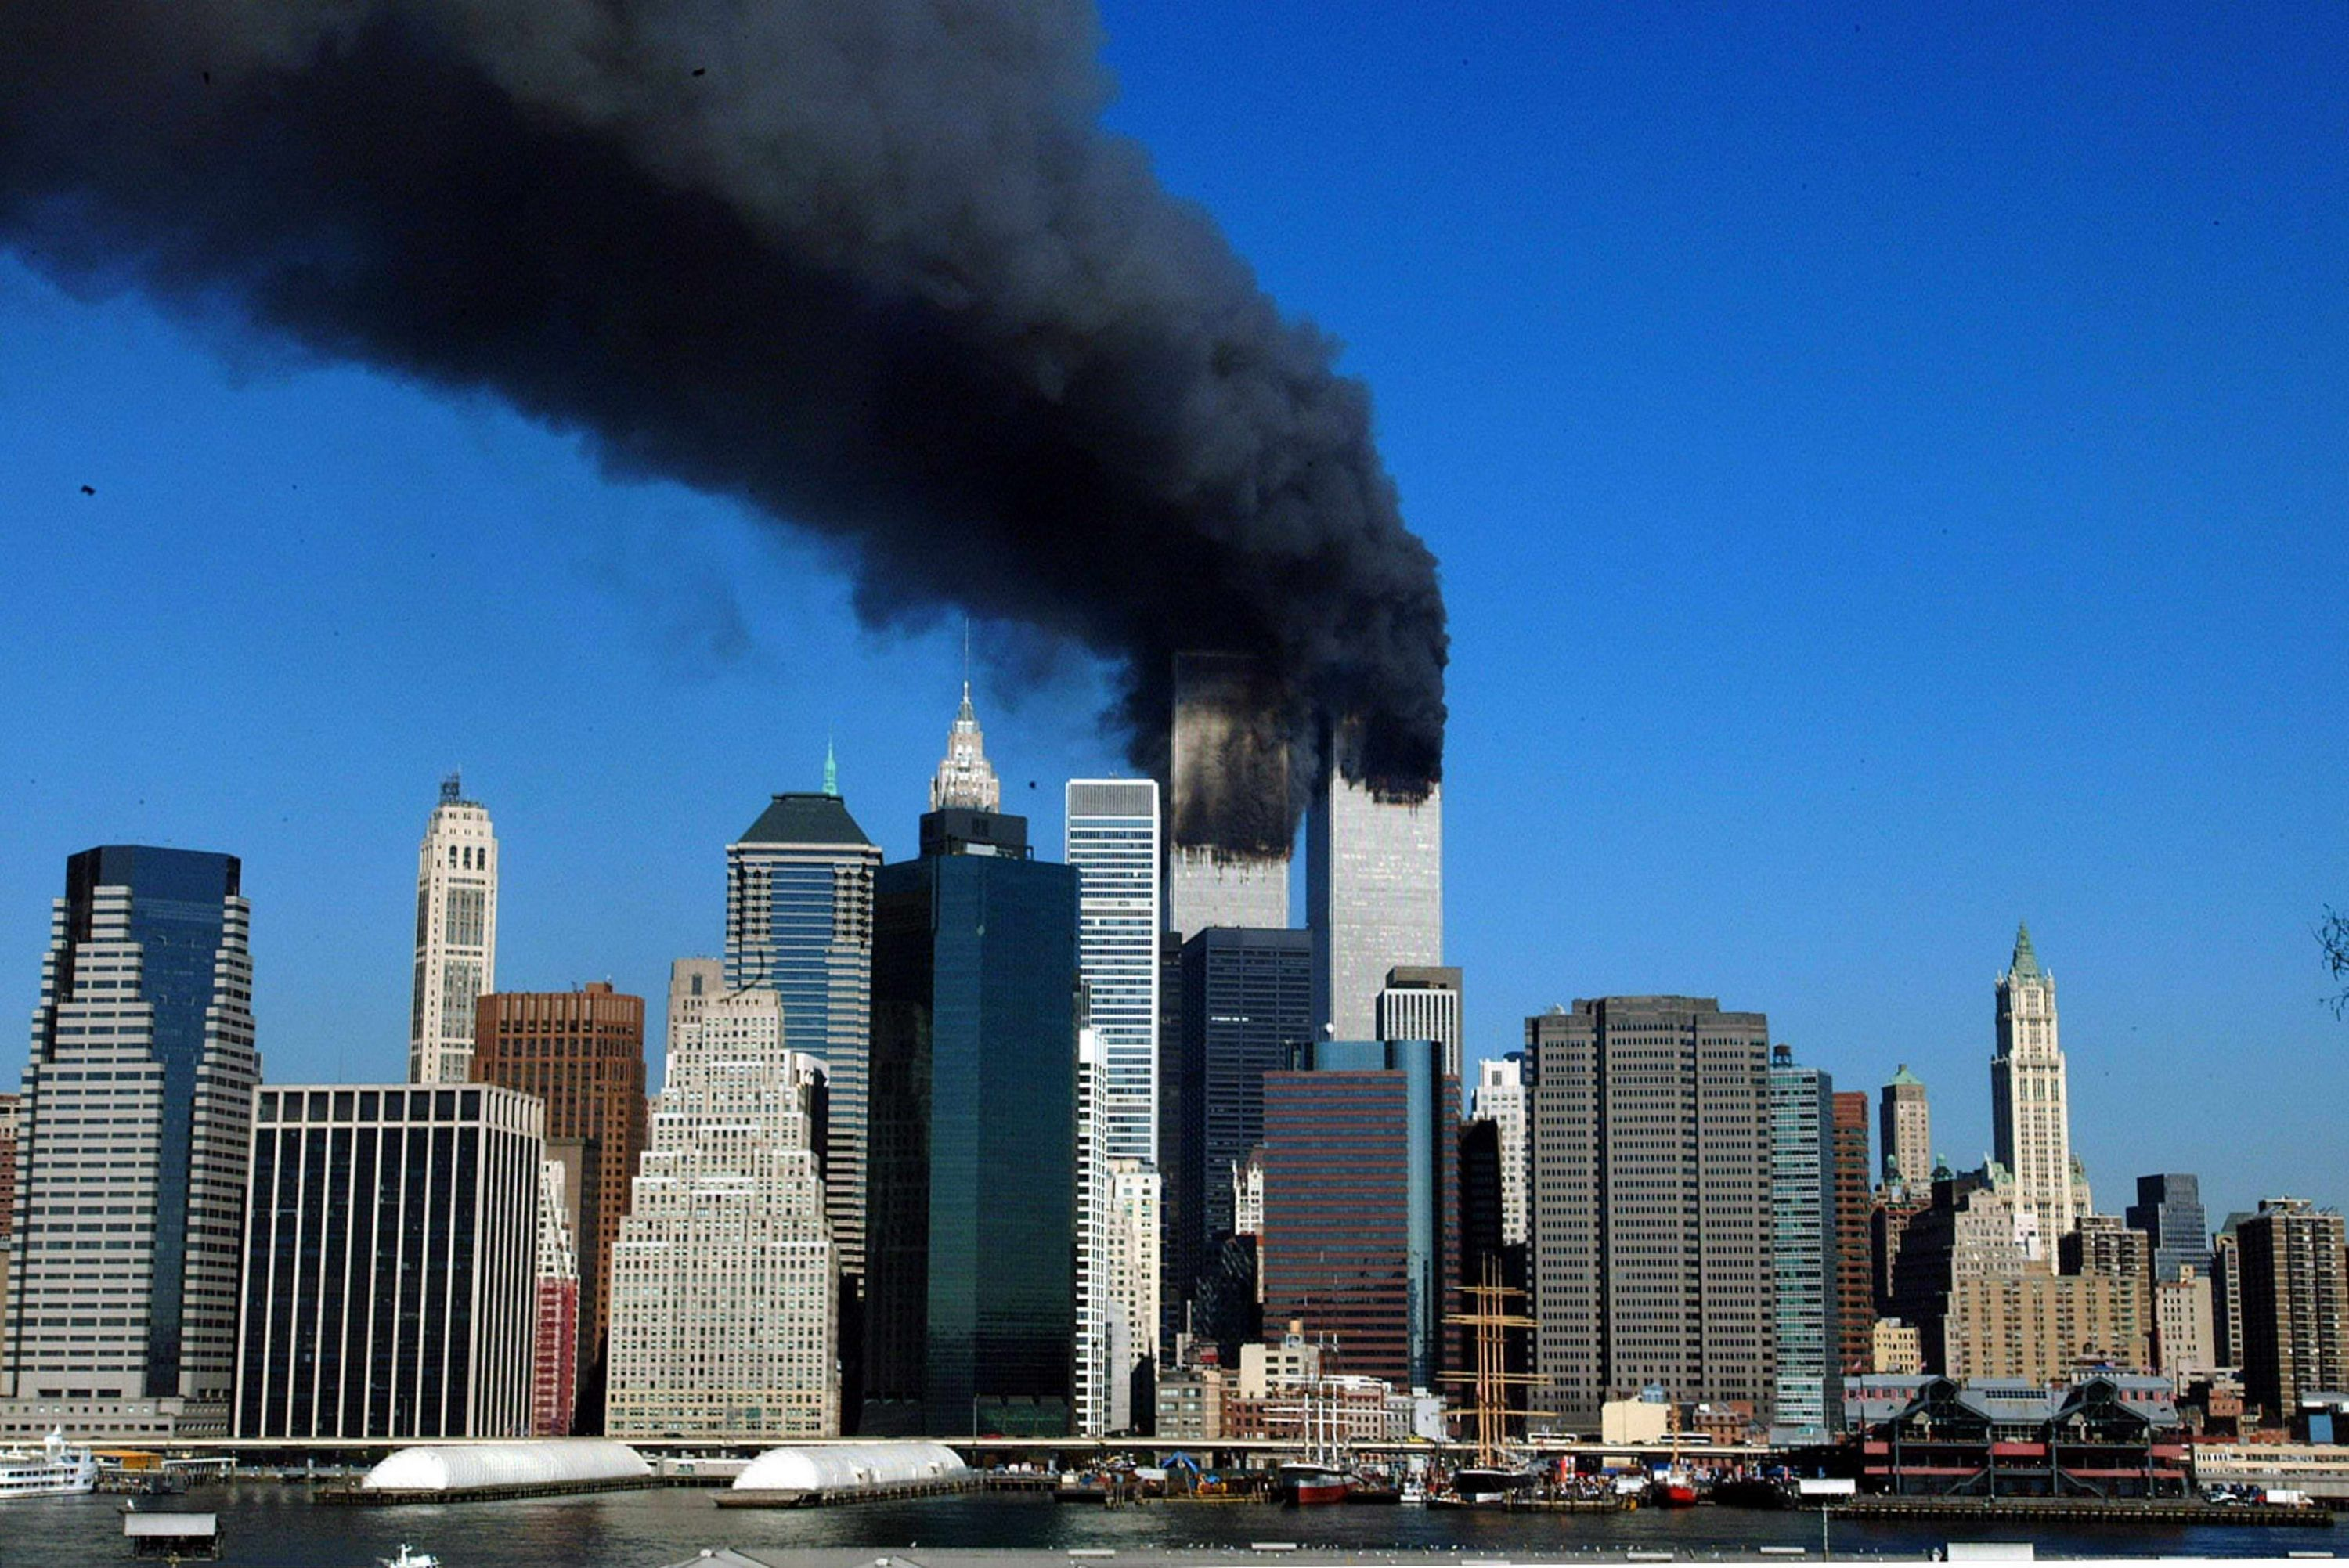 The twin towers of the World Trade Center billow smoke after hijacked airliners crashed into them early 11 September, 2001. The suspected terrorist attack has caused the collapsed of both towers. AFP PHOTO/Henny Ray ABRAMS (Photo credit should read HENNY RAY ABRAMS/AFP via Getty Images)